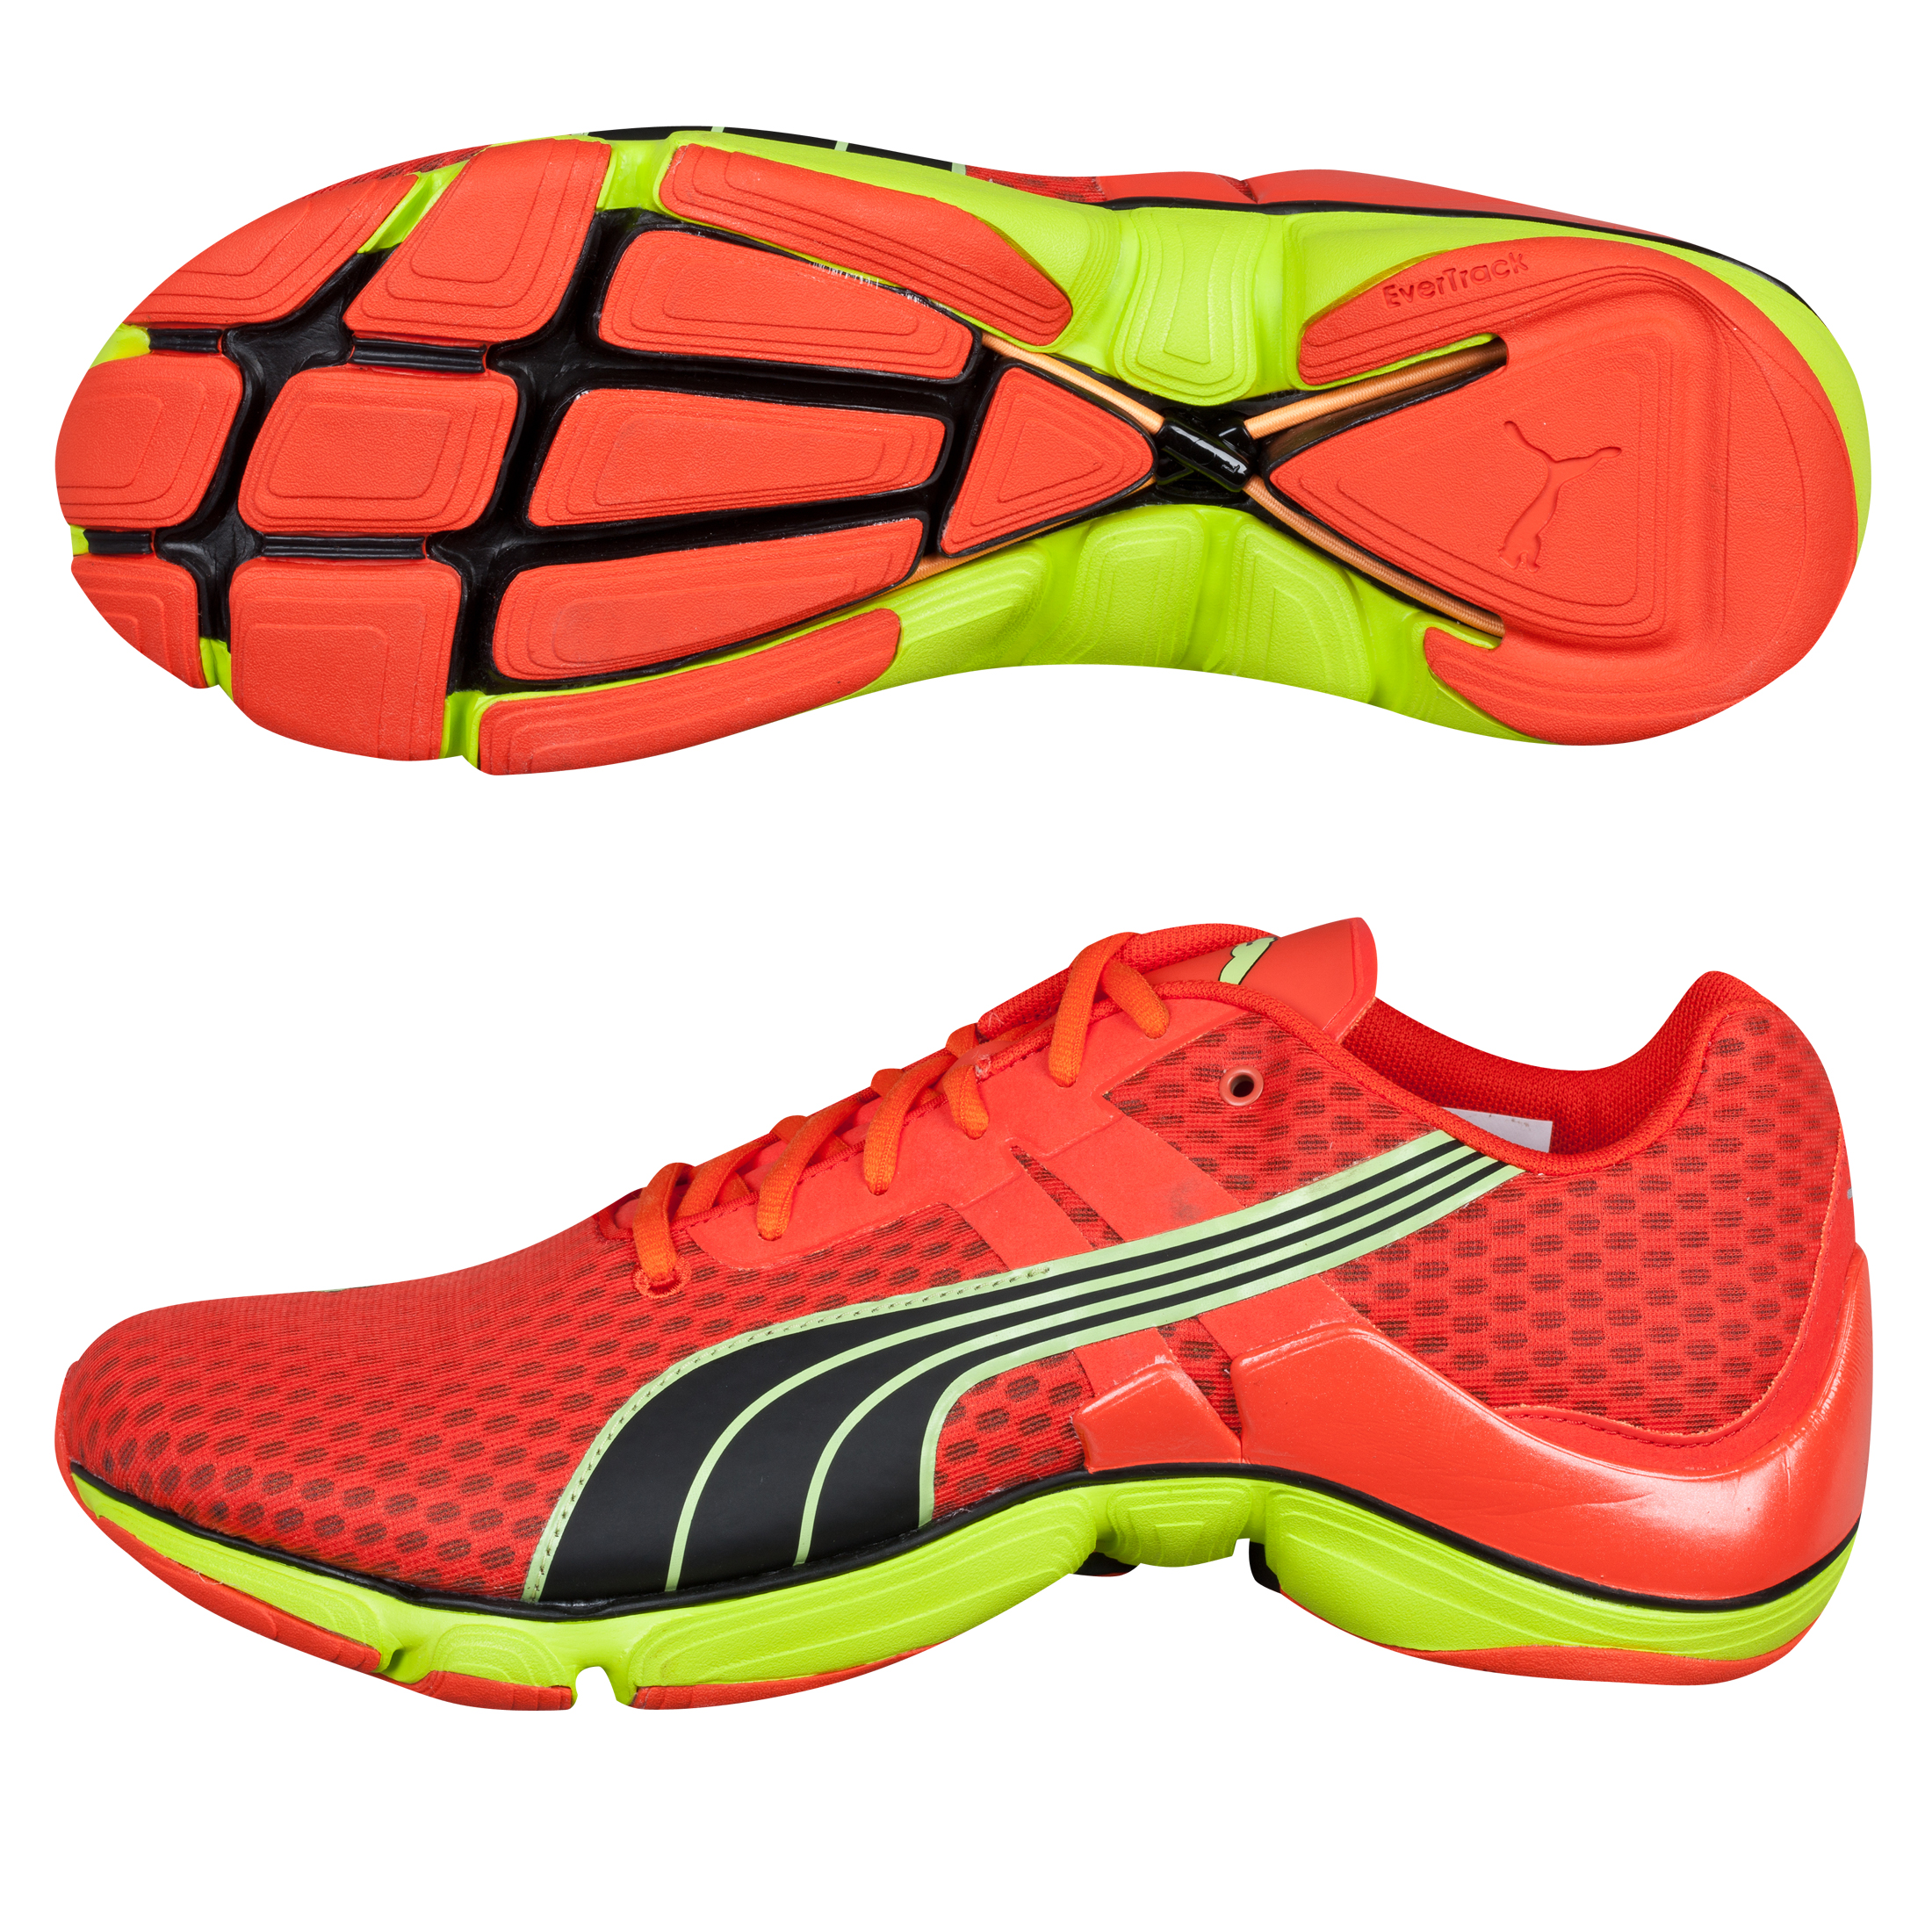 Puma Mobium Elite NM Running Trainers - Cherry Tomato/Lime-Black Red